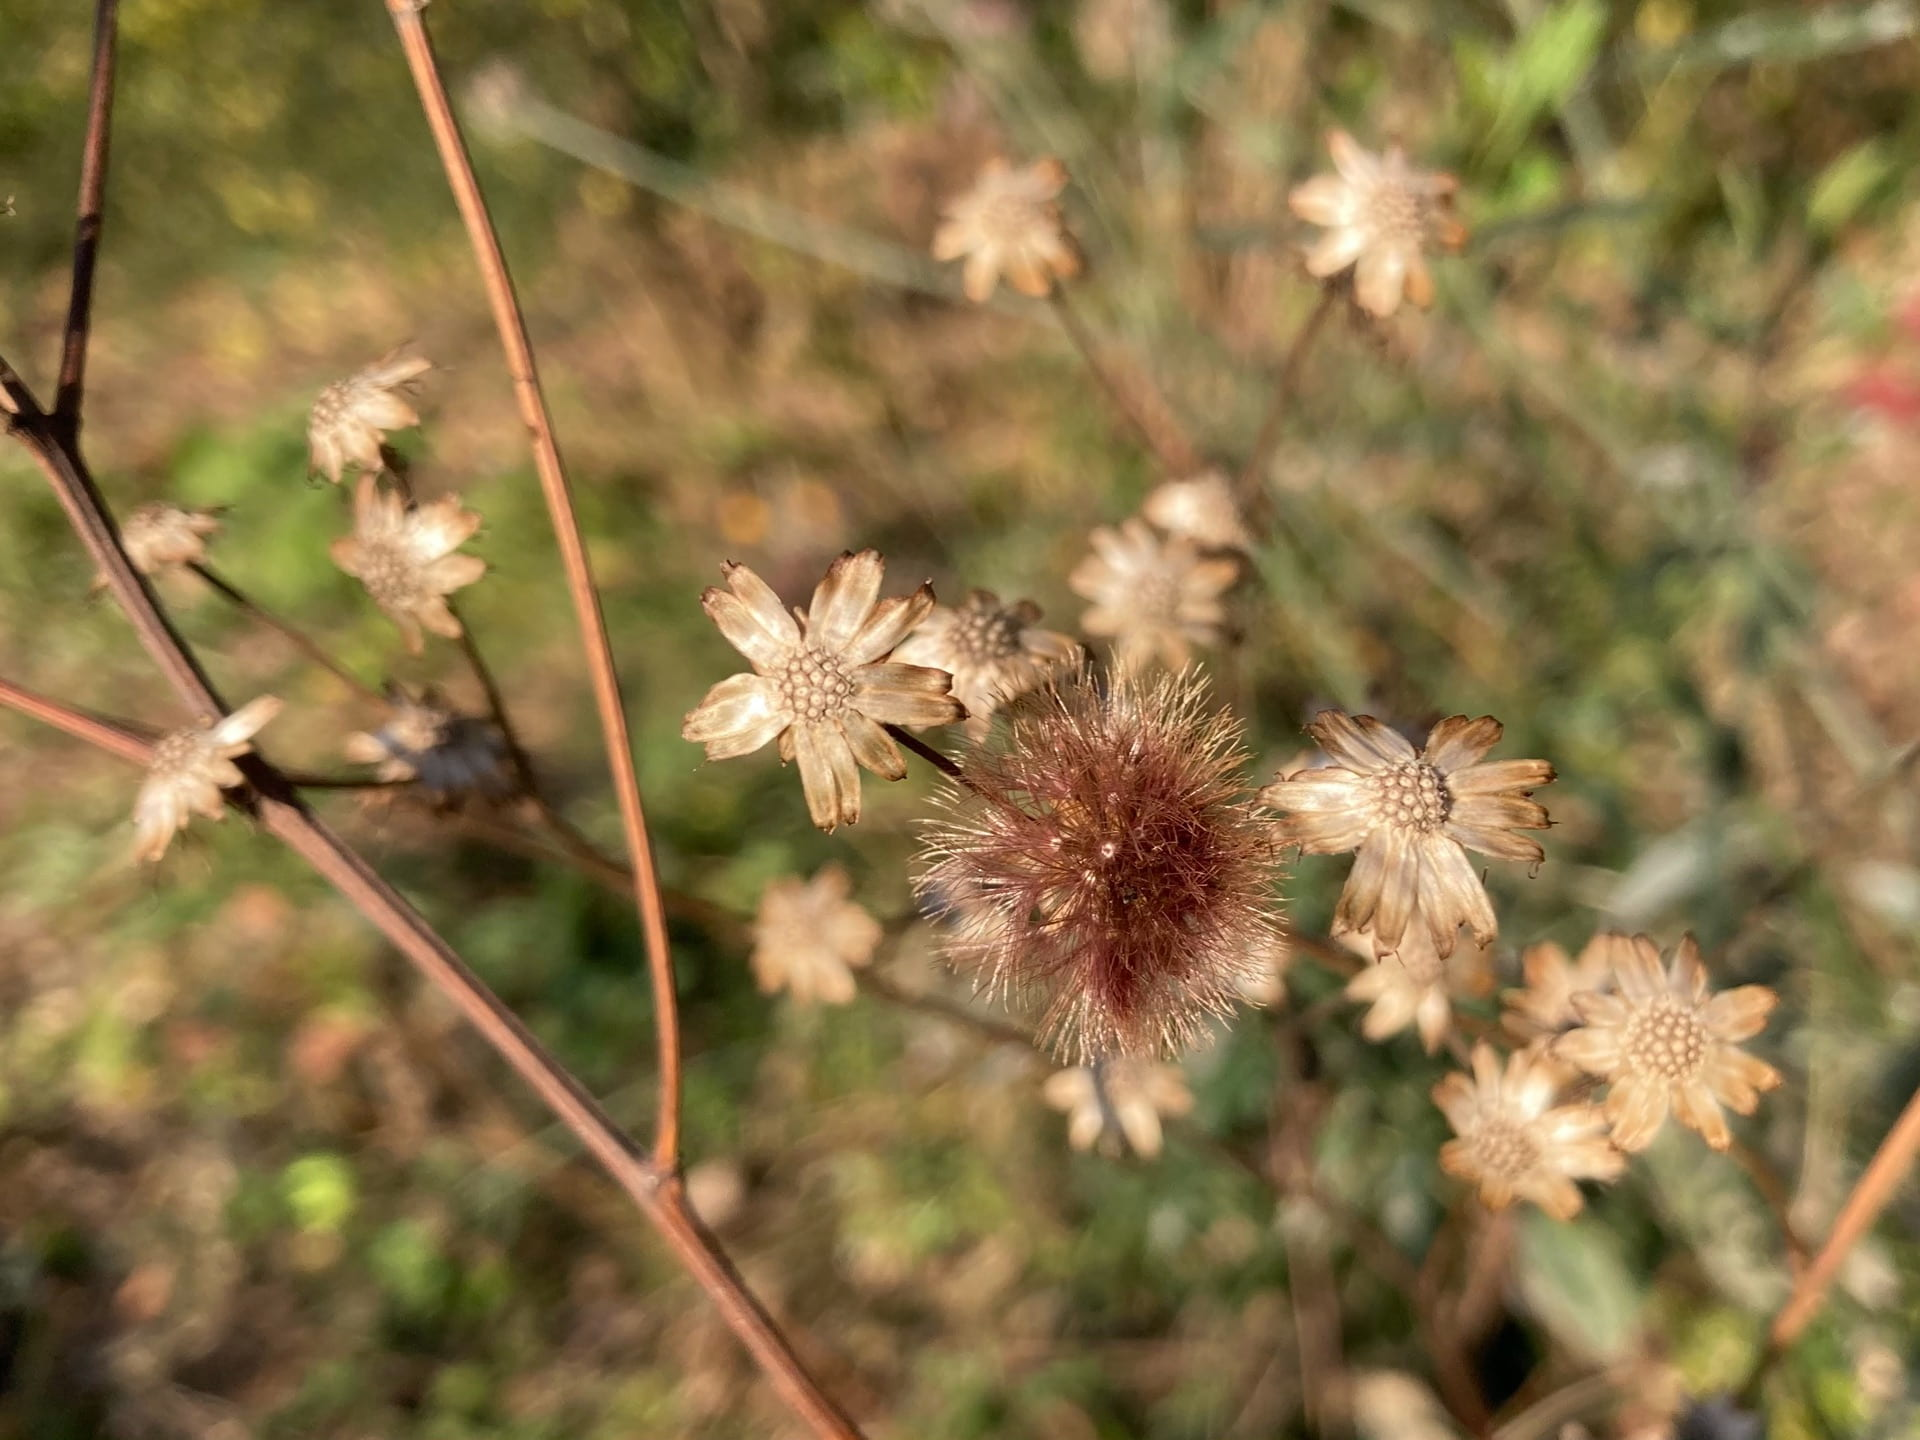 The seed heads of Vernonia noveboracensis look like small brown flowers themselves.